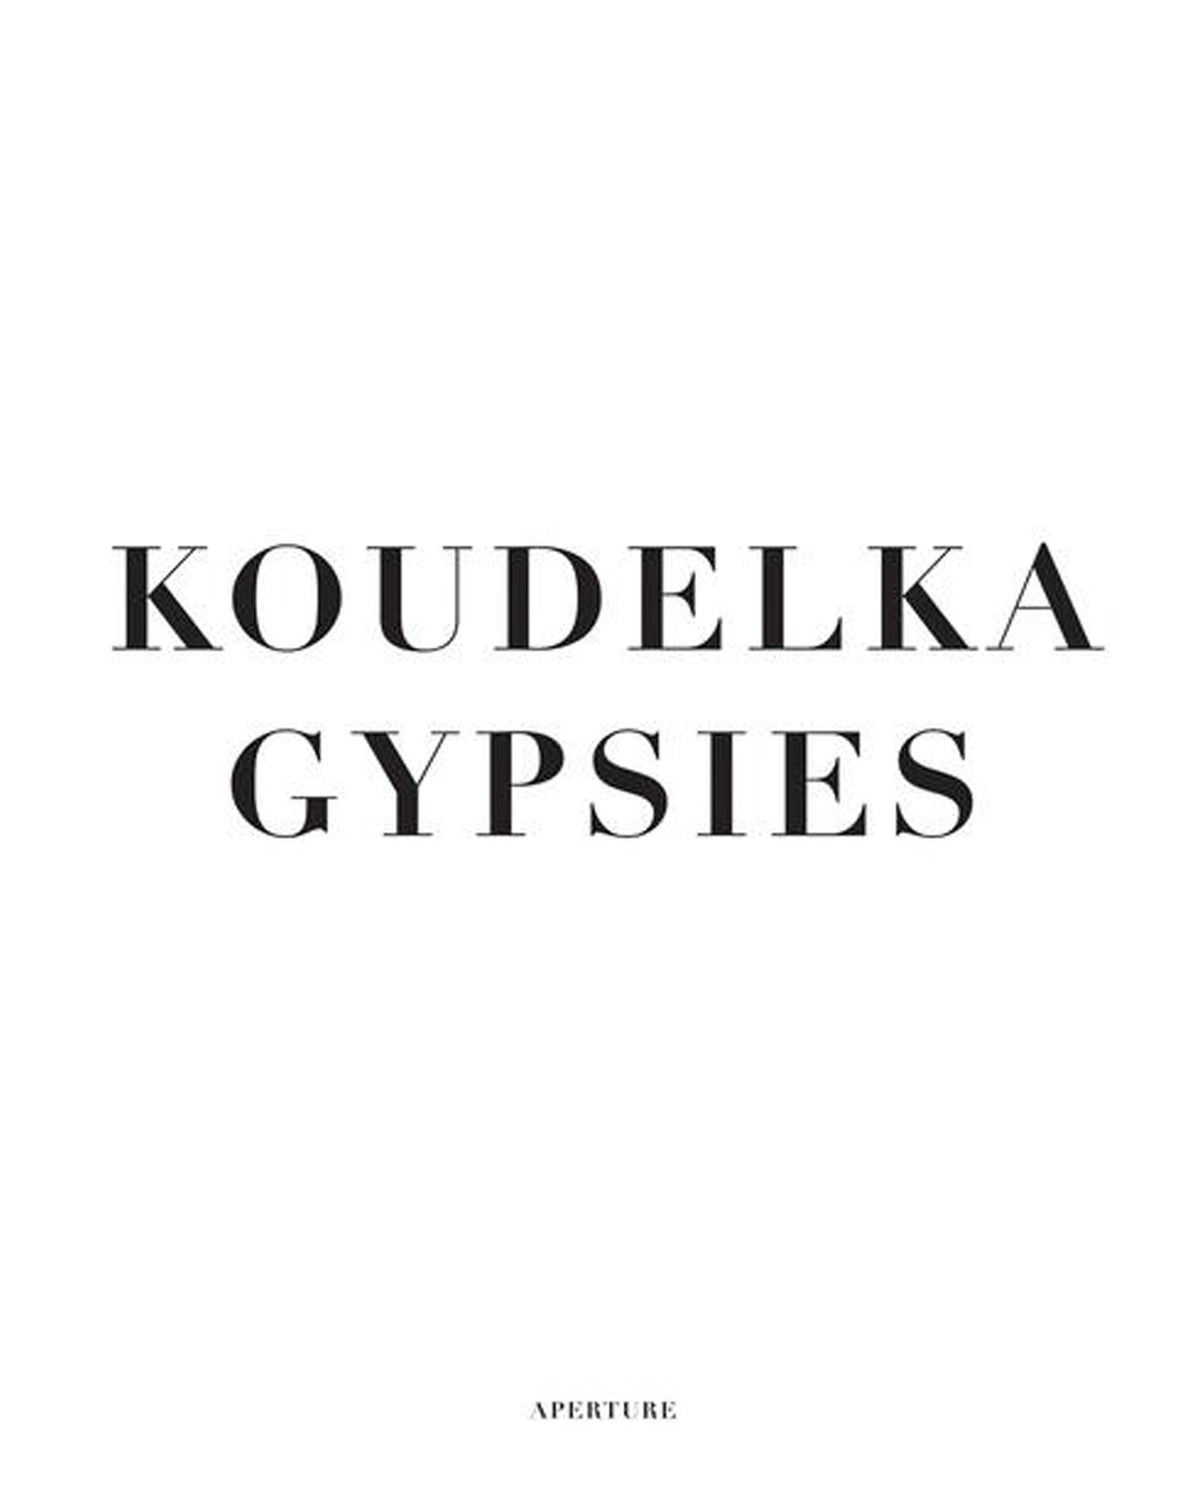 KOUDELKA GYPSIES  /  Aperature